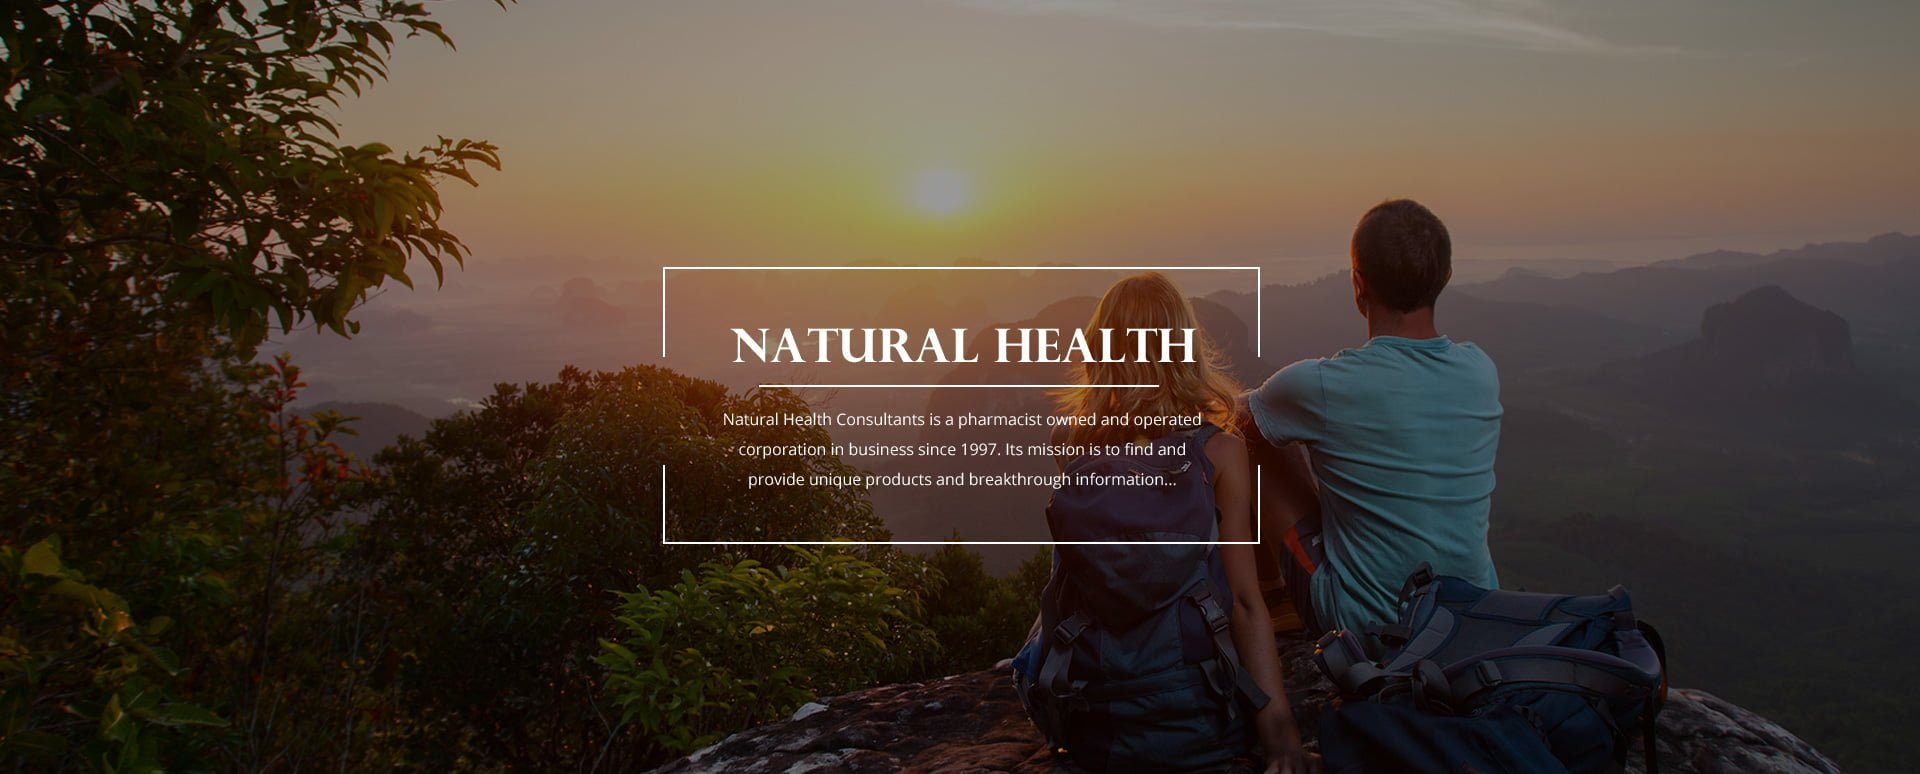 Ecommerce_Natural_Health